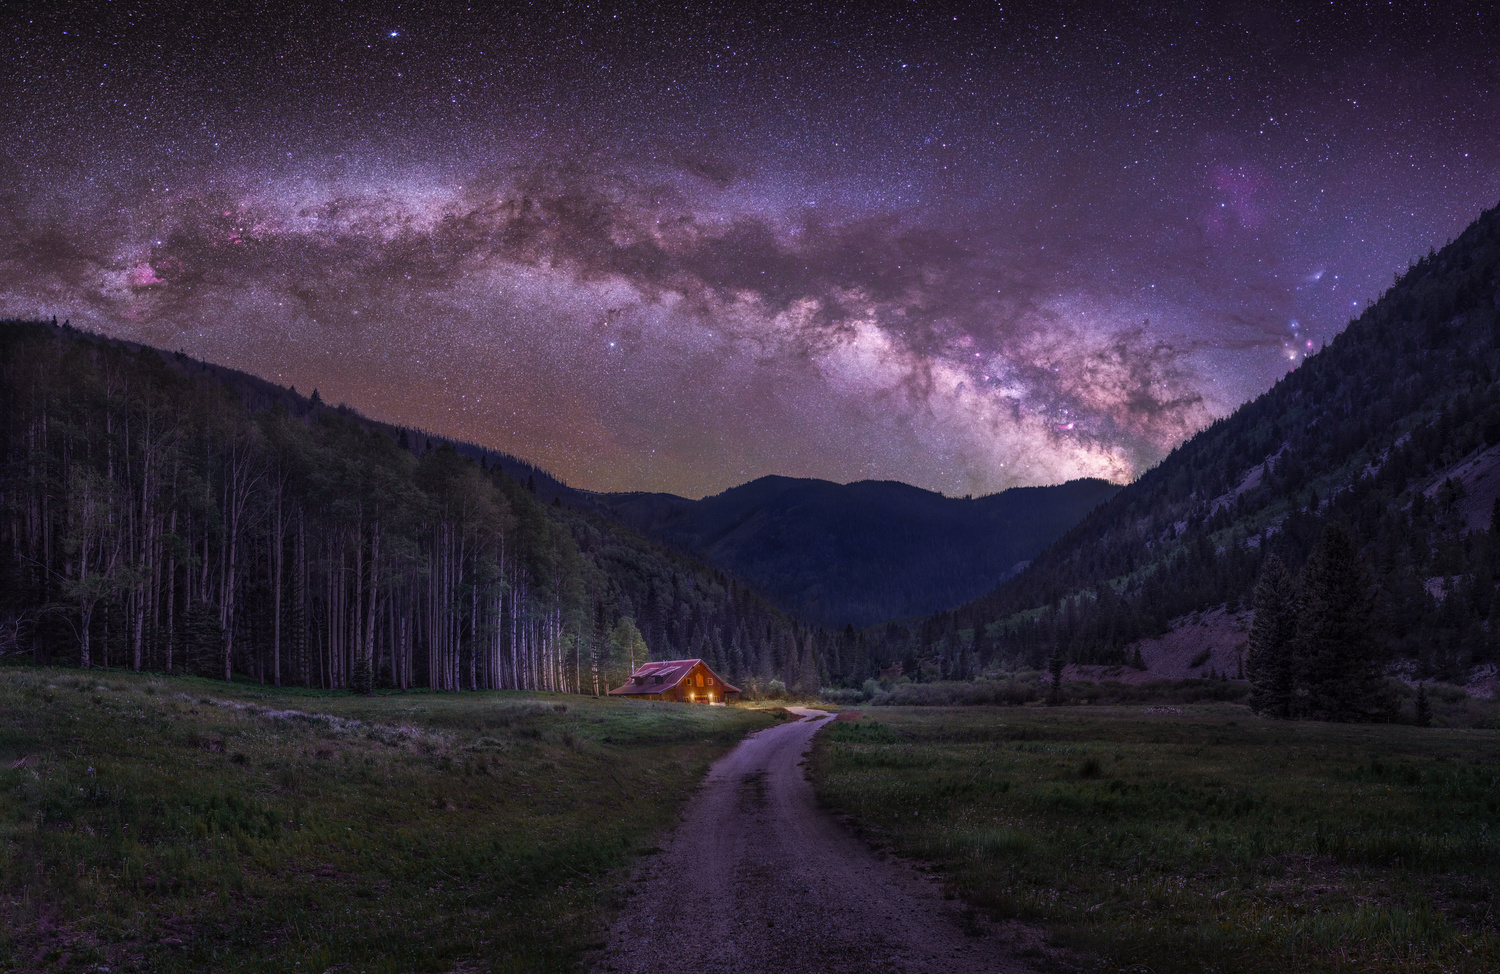 Valle de las Estrellas by Christopher Scott